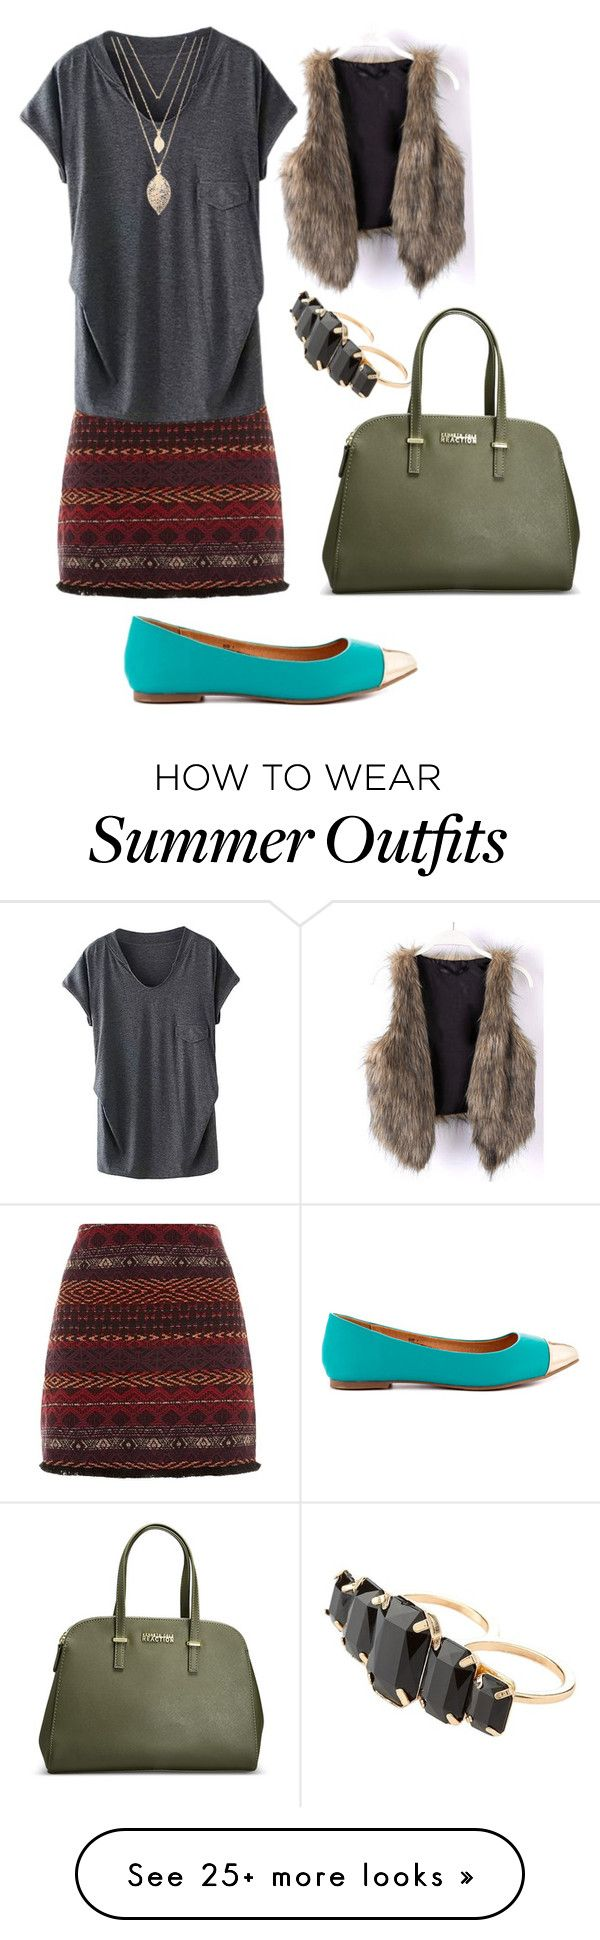 """New outfit with tights and long sleeve undershirt"" by kelly-kristine on Polyvore featuring Restricted, Forever 21, Charlotte Russe and Avenue"